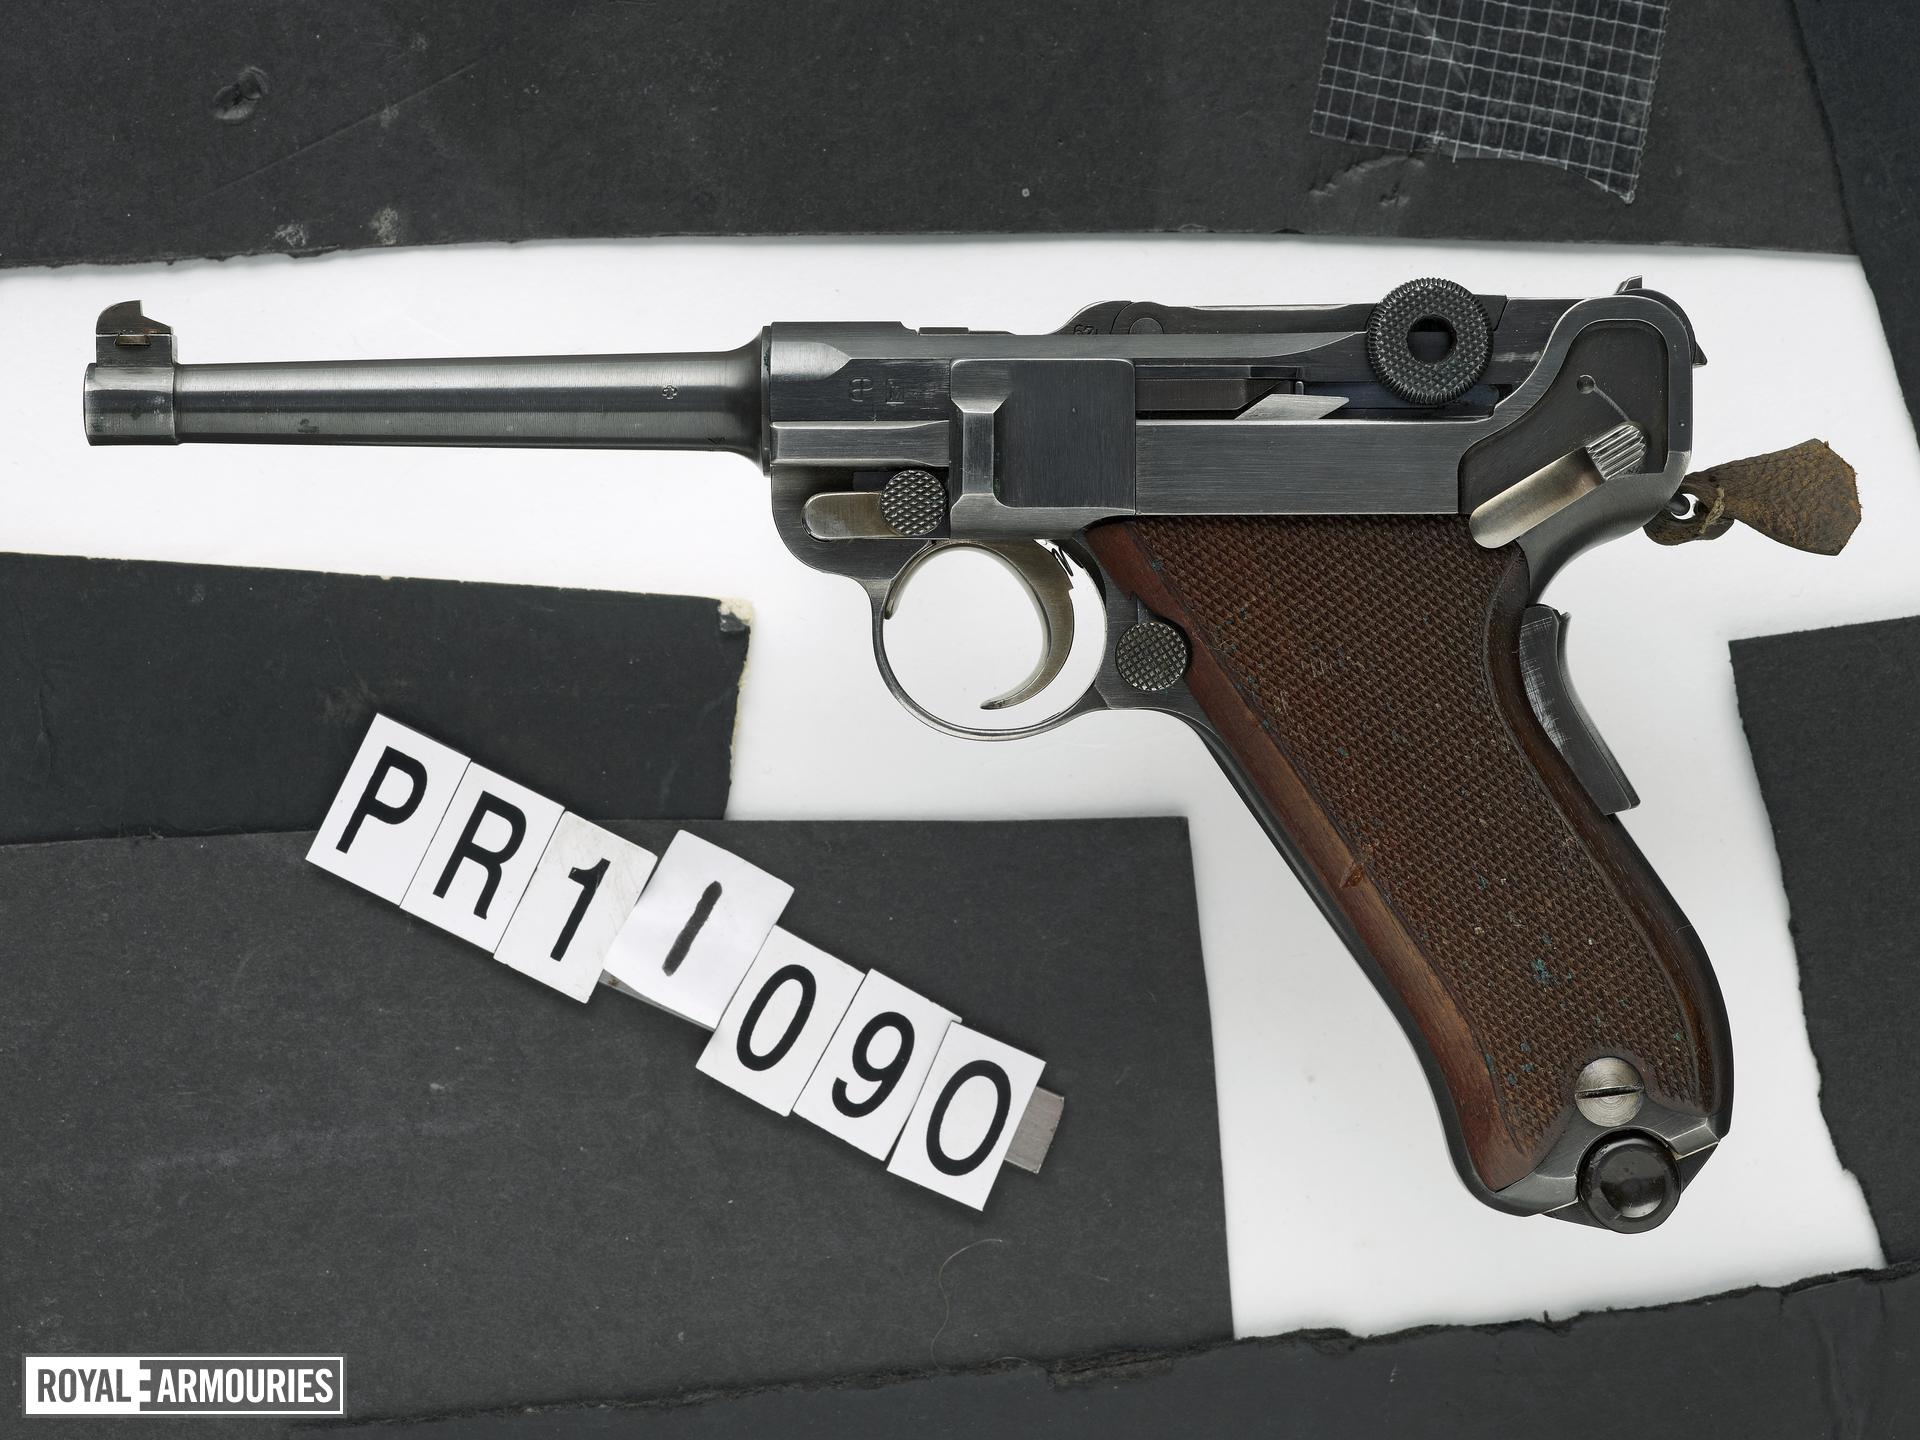 Centrefire self-loading pistol - Luger Model 1906 Swiss military pattern service pistol as produced by W+F Bern from 1918 - 1929.